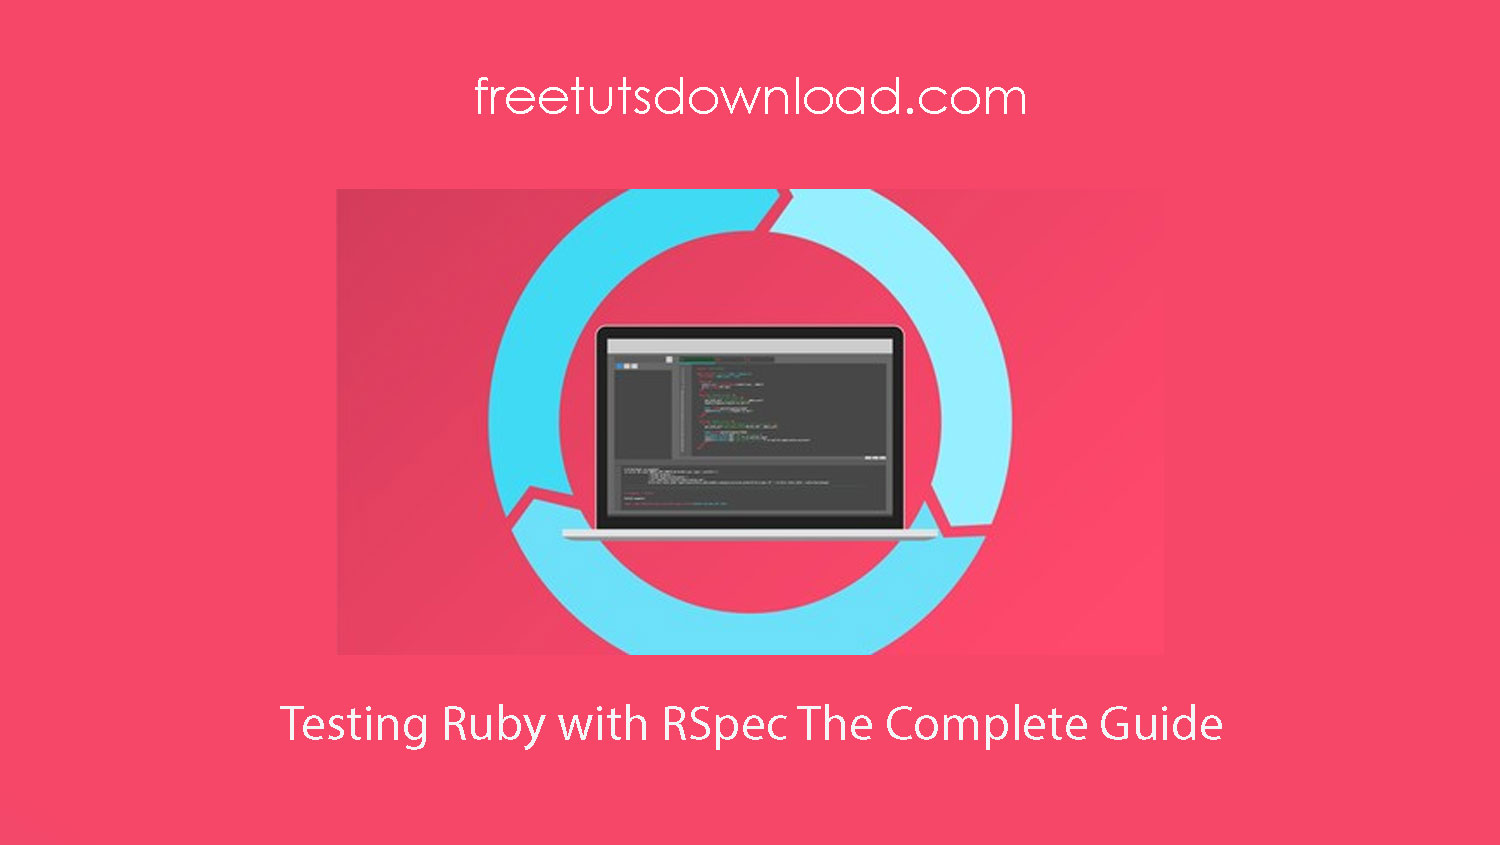 Testing Ruby with RSpec The Complete Guide Free Download